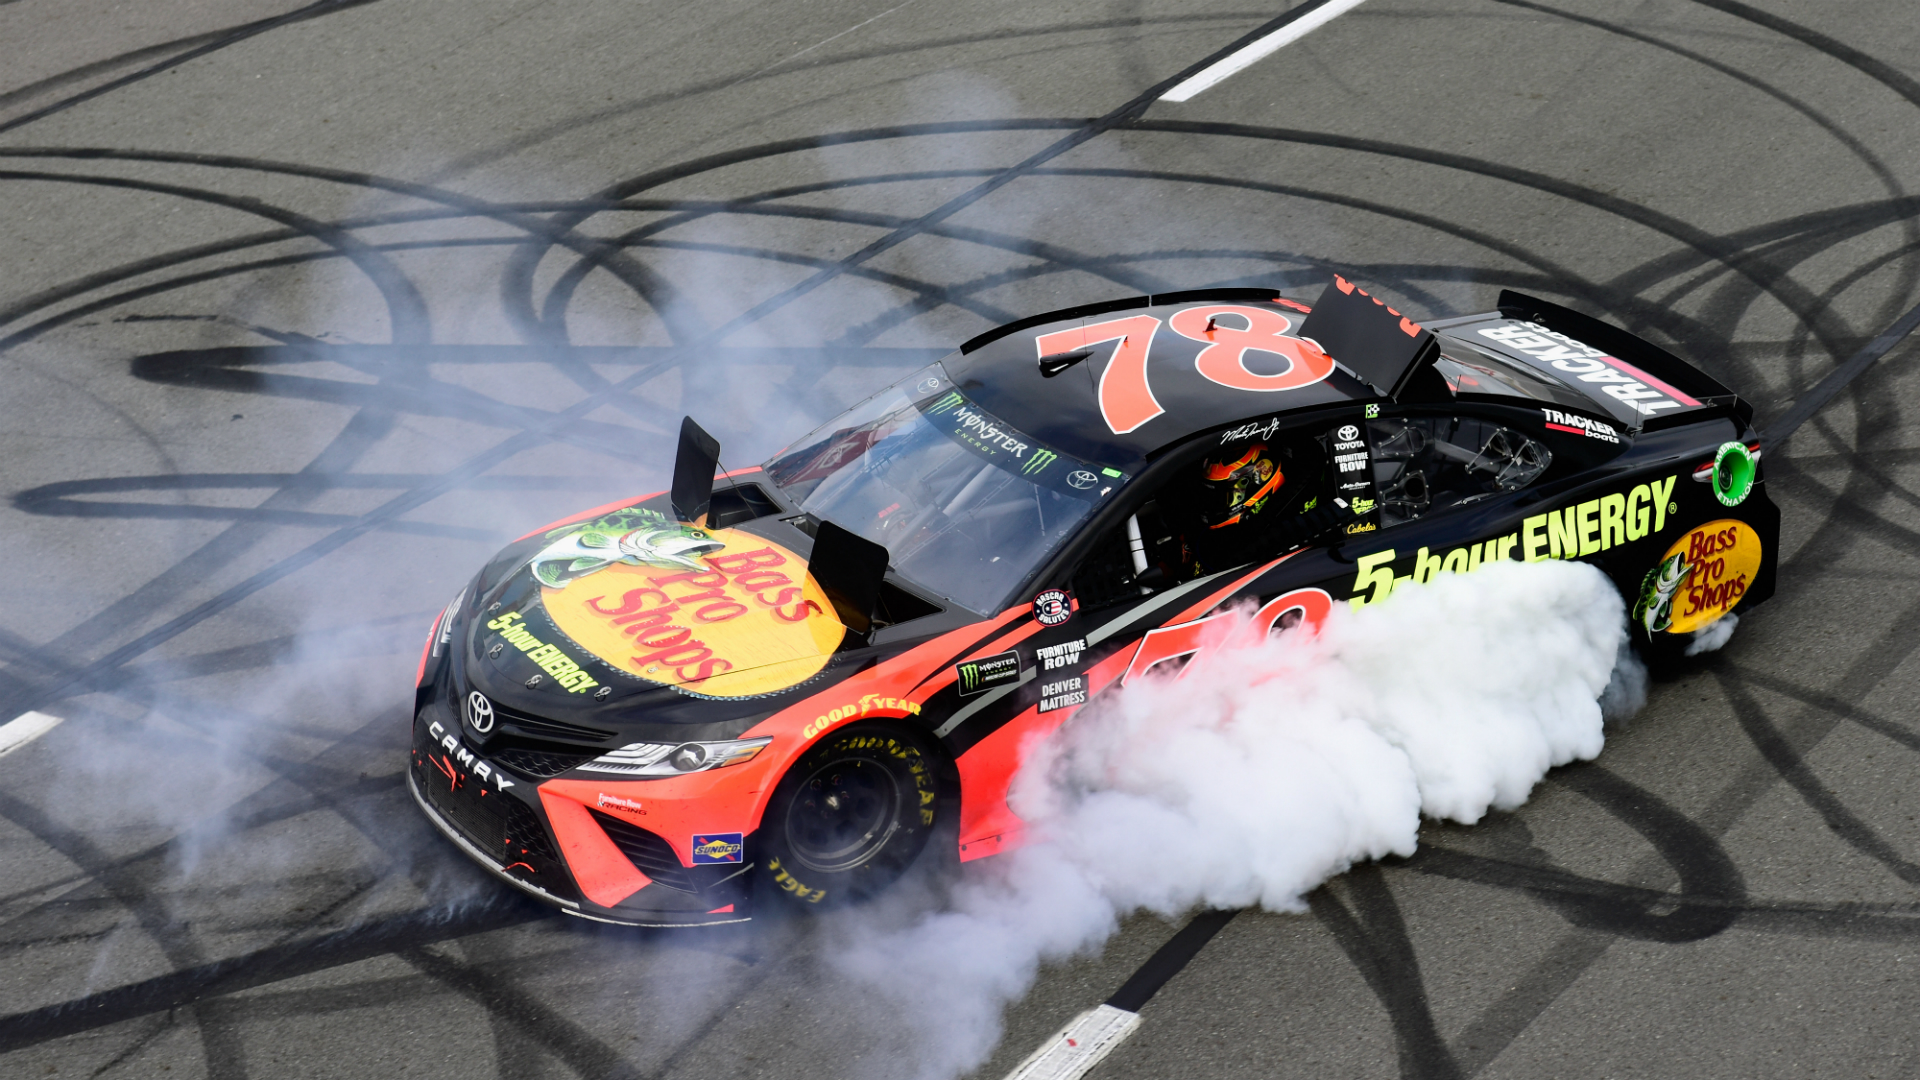 NASCAR at Pocono: Odds, prediction, sleepers, drivers to watch for Pocono 400